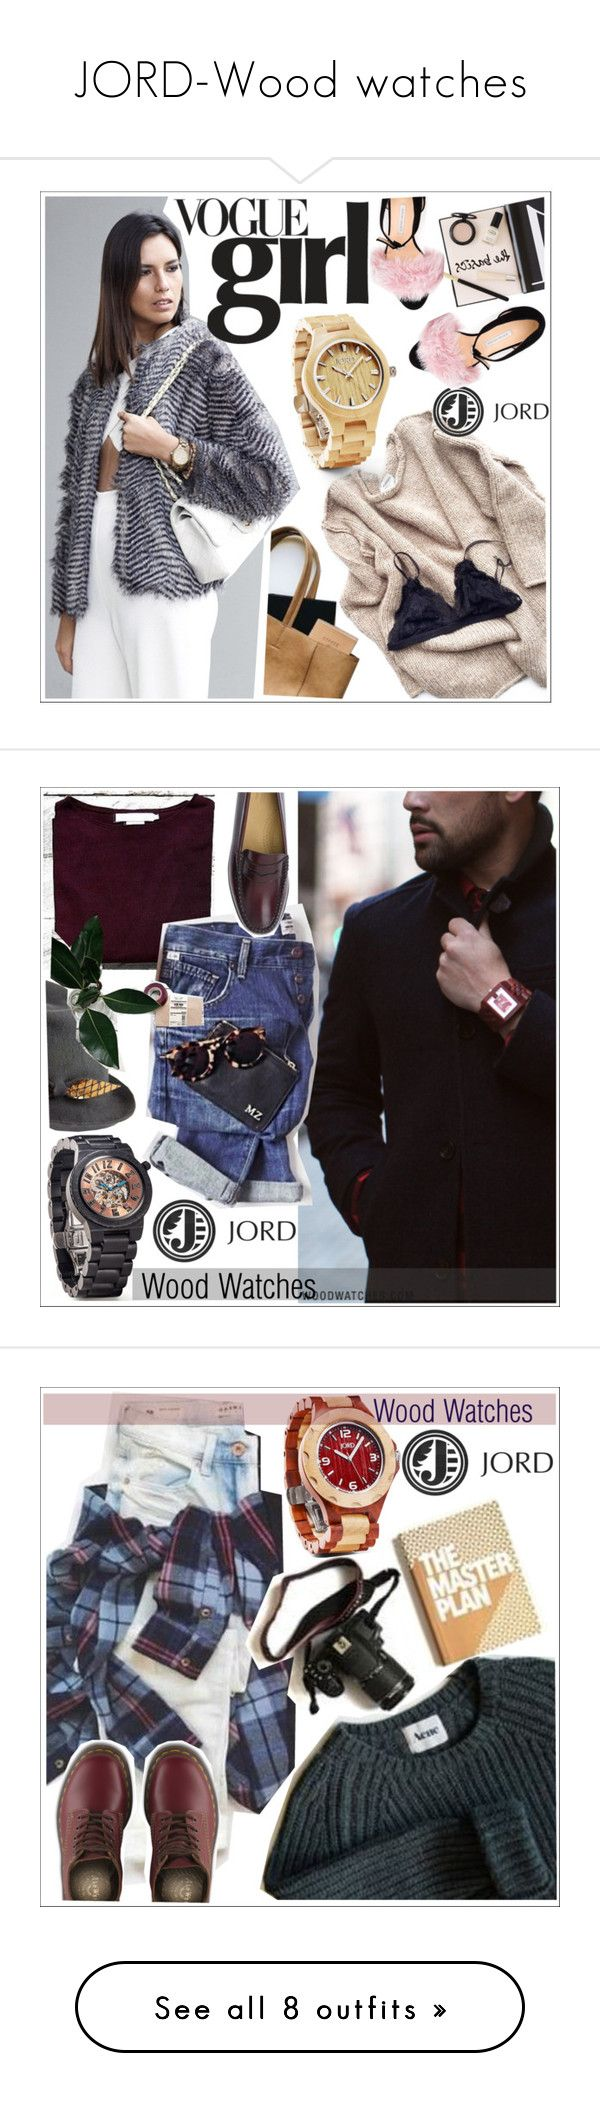 """""""JORD-Wood watches"""" by teoecar ❤ liked on Polyvore featuring jord, Nuevo, Fieldcrest, Prada, Bionda Castana, Justine Hats, G.H. Bass, Dr. Martens, Nuuna and Dsquared2"""